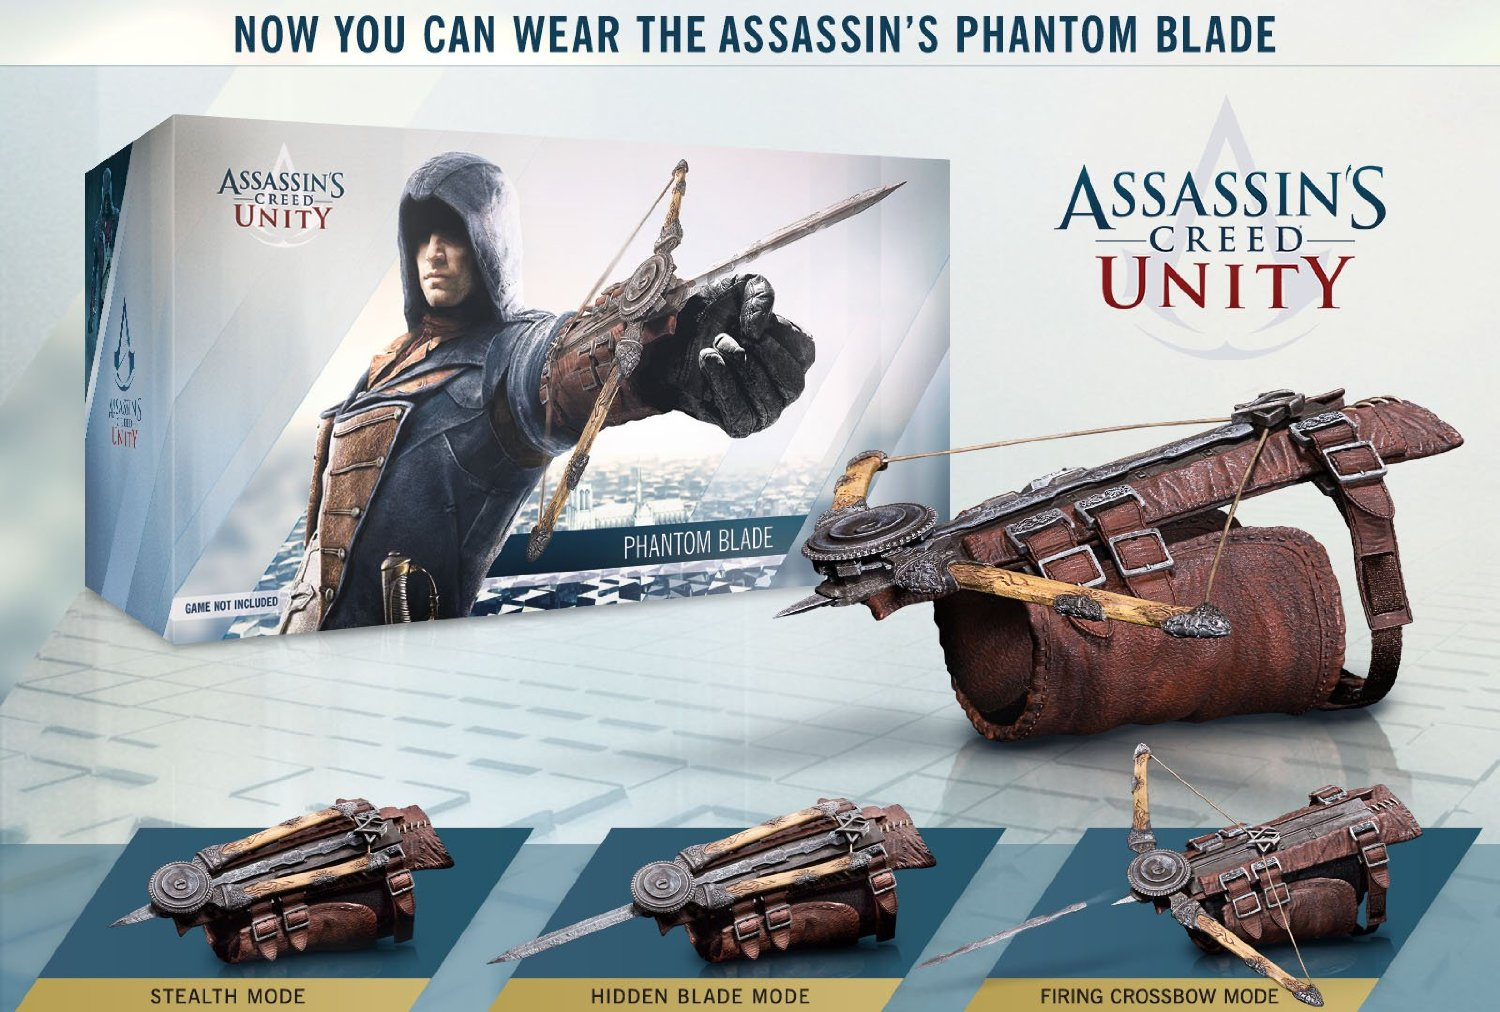 Assassins Creed 5 Unity Hidden Blade Action Figure Edward Kenway Cosplay Costume New in Retail Box футболка женская roxy boyfriendstella j tees blue print